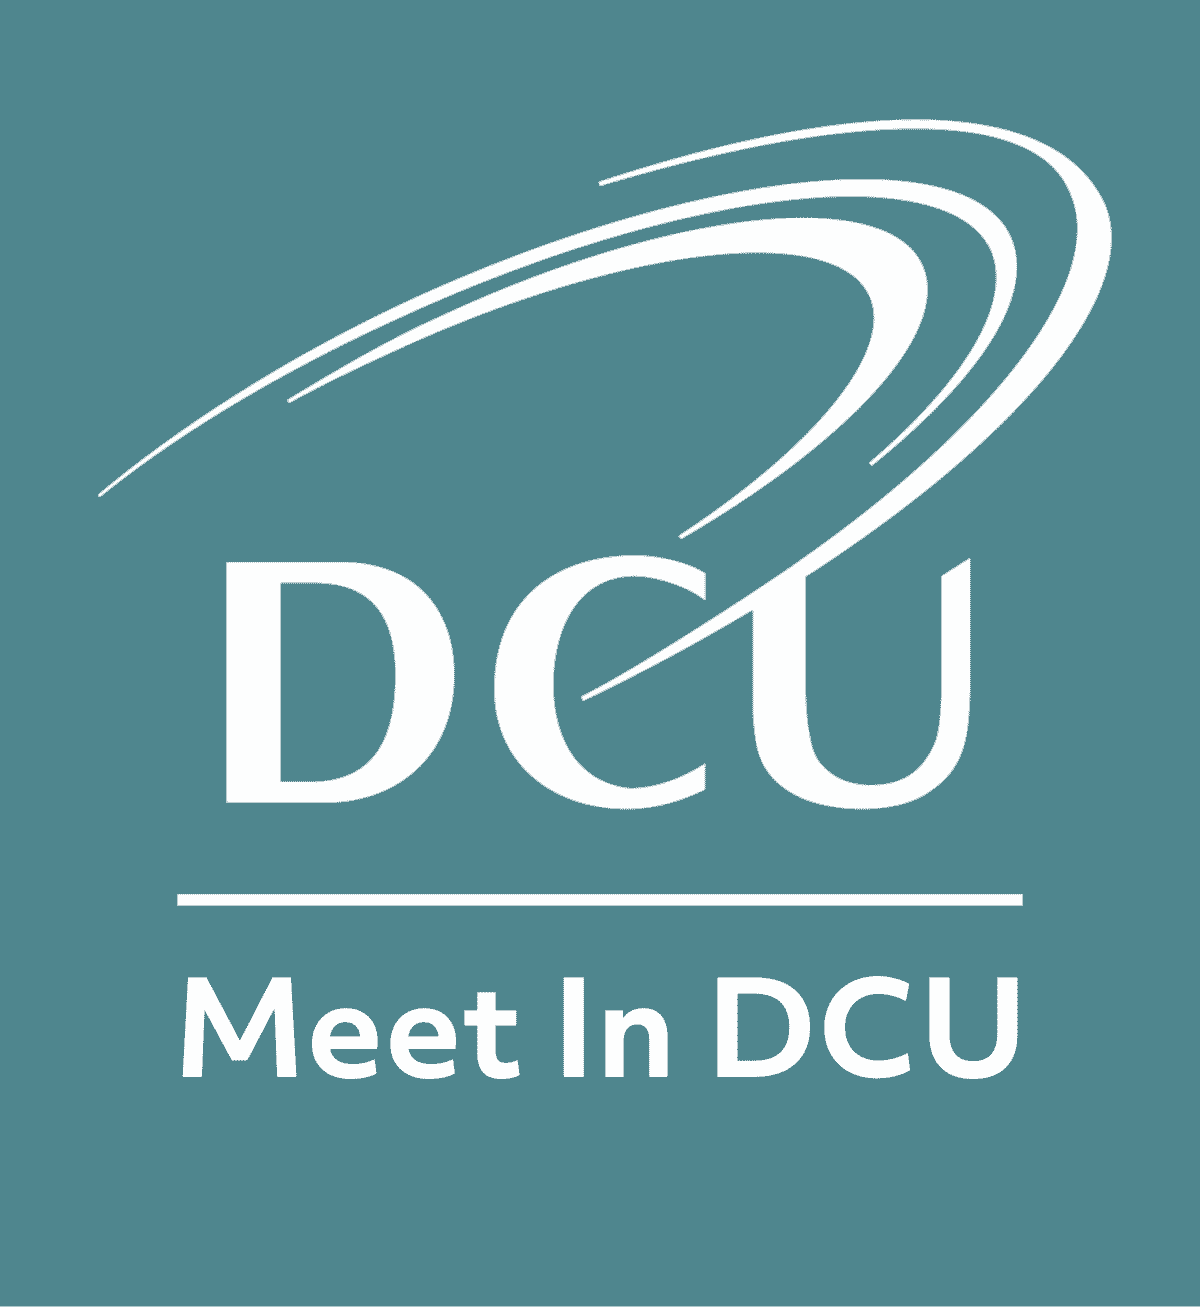 Meet In DCU